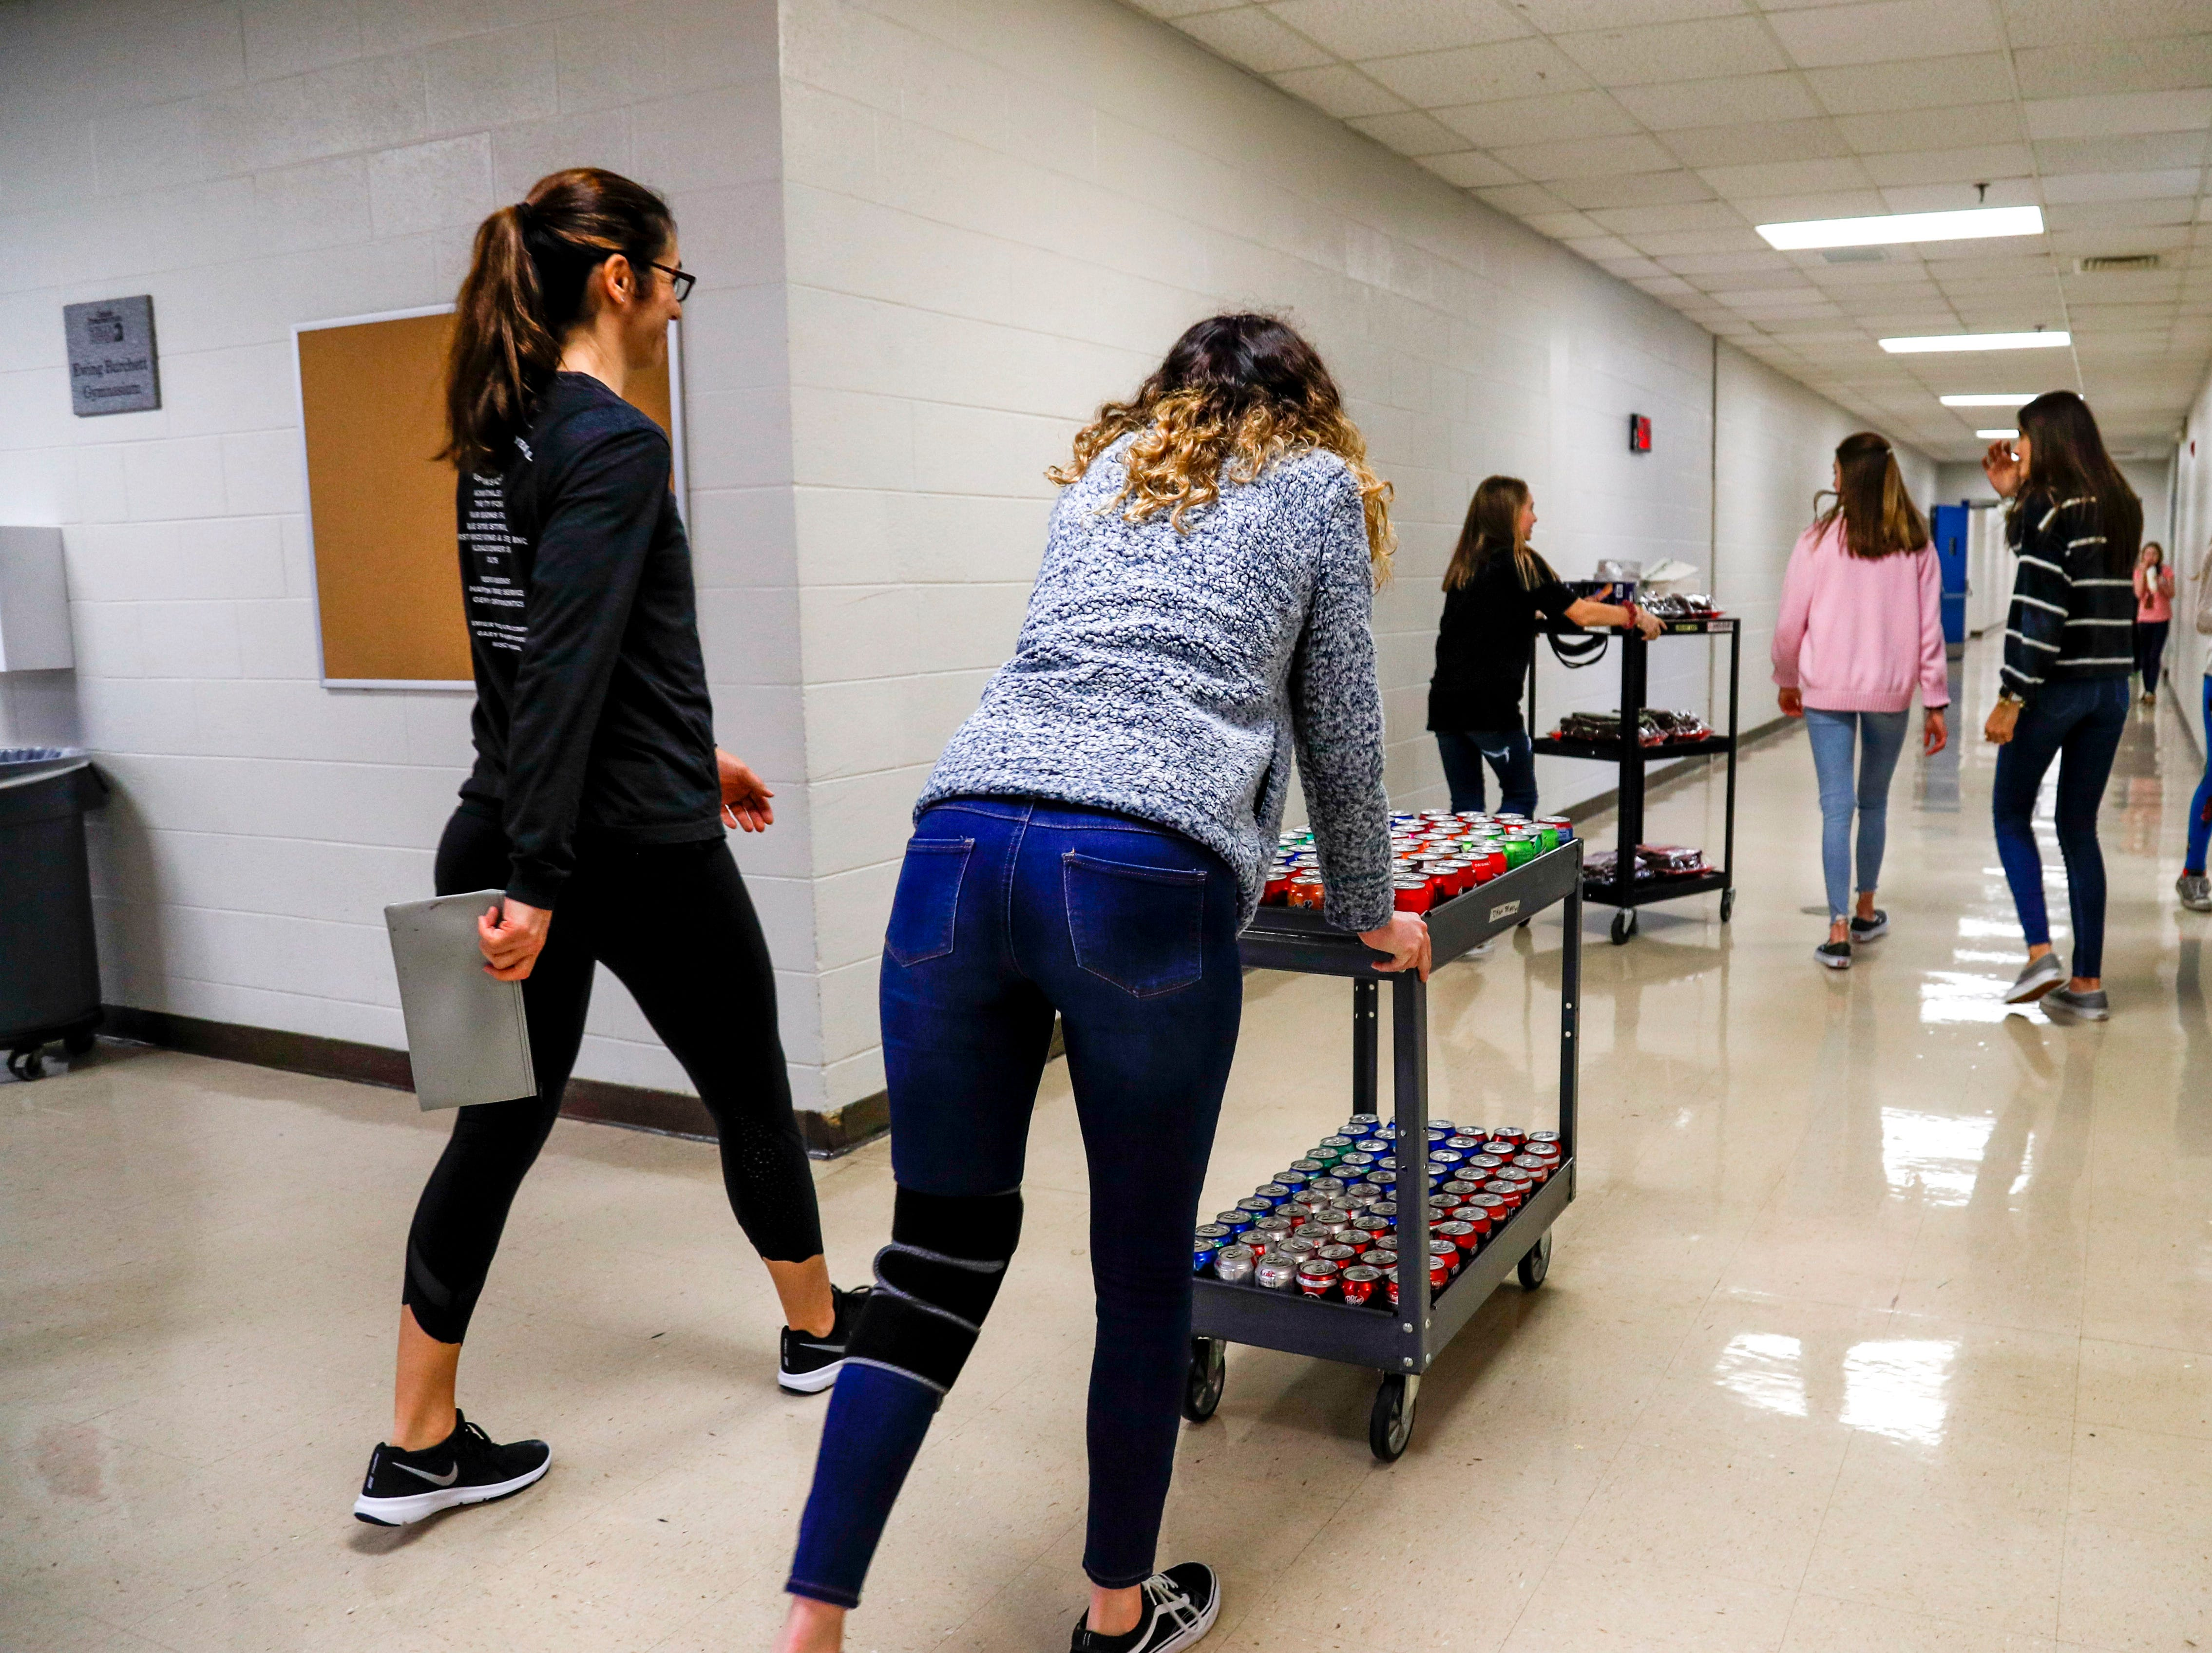 Students head down the halls with trays of brownies and drinks that will be sold as a part of the last bake sale and be donated to fund the 8th grade dance at Richview Middle School in Clarksville, Tenn., on Friday, March 15, 2019.